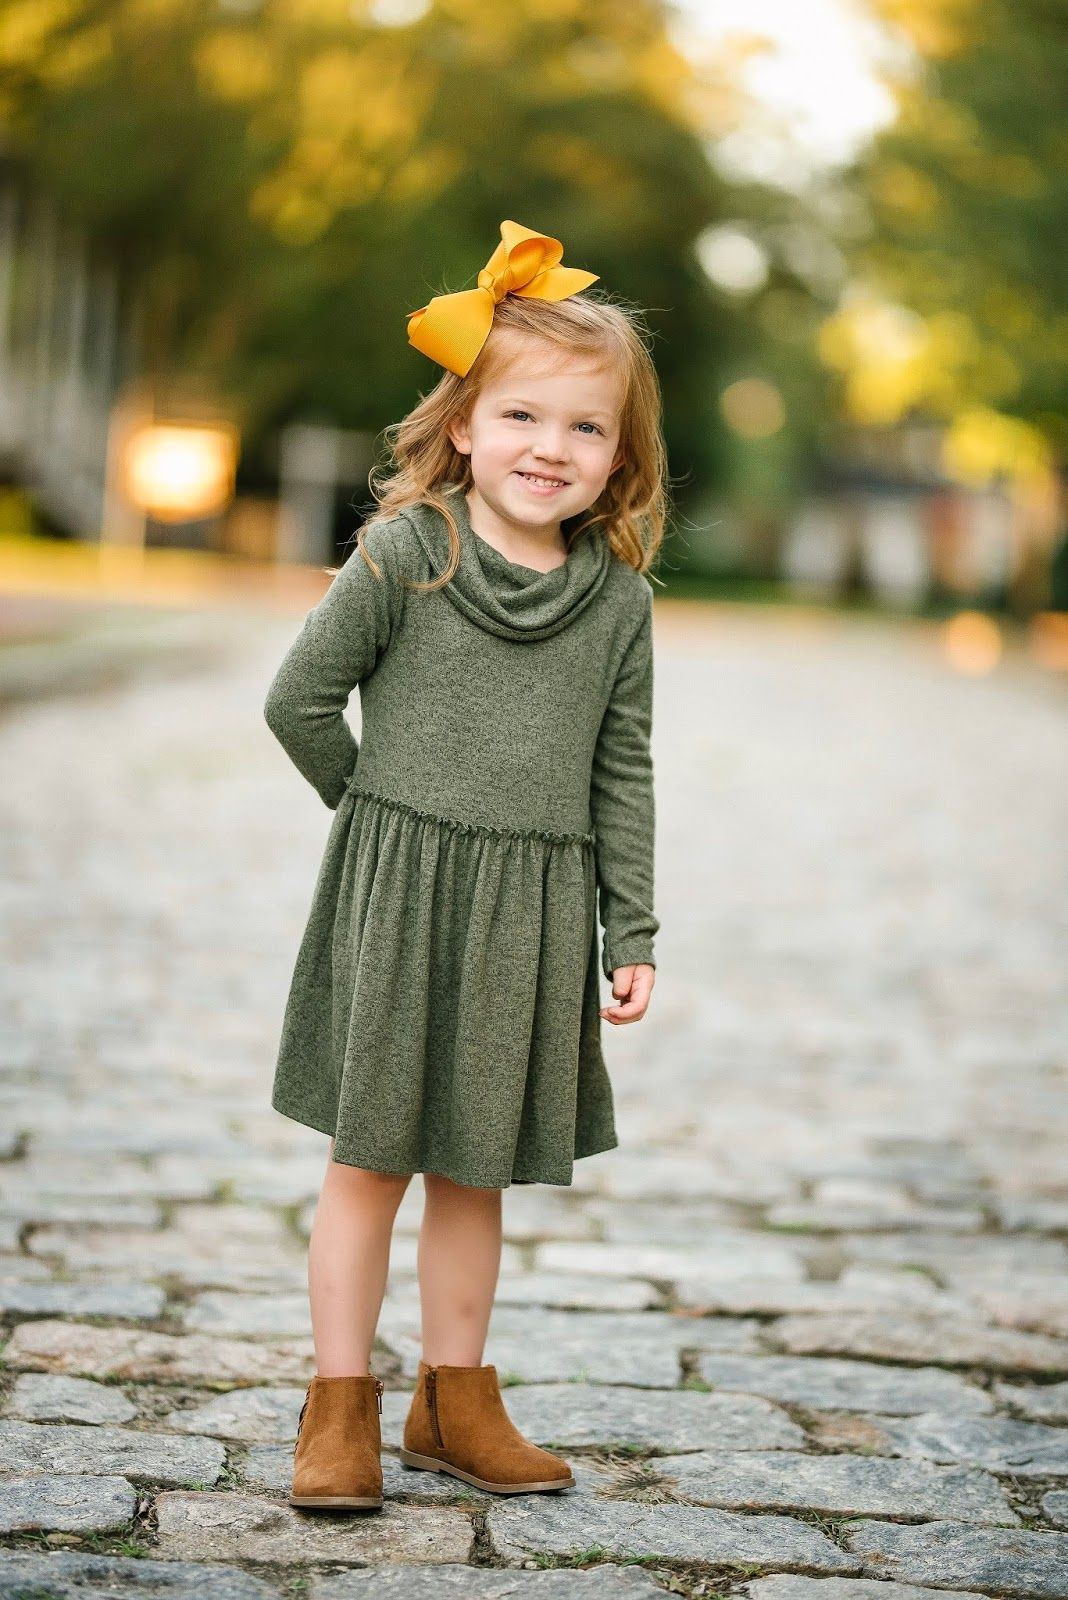 Mustard Yellow & Olive Green for Fall  Green toddler dress, Baby